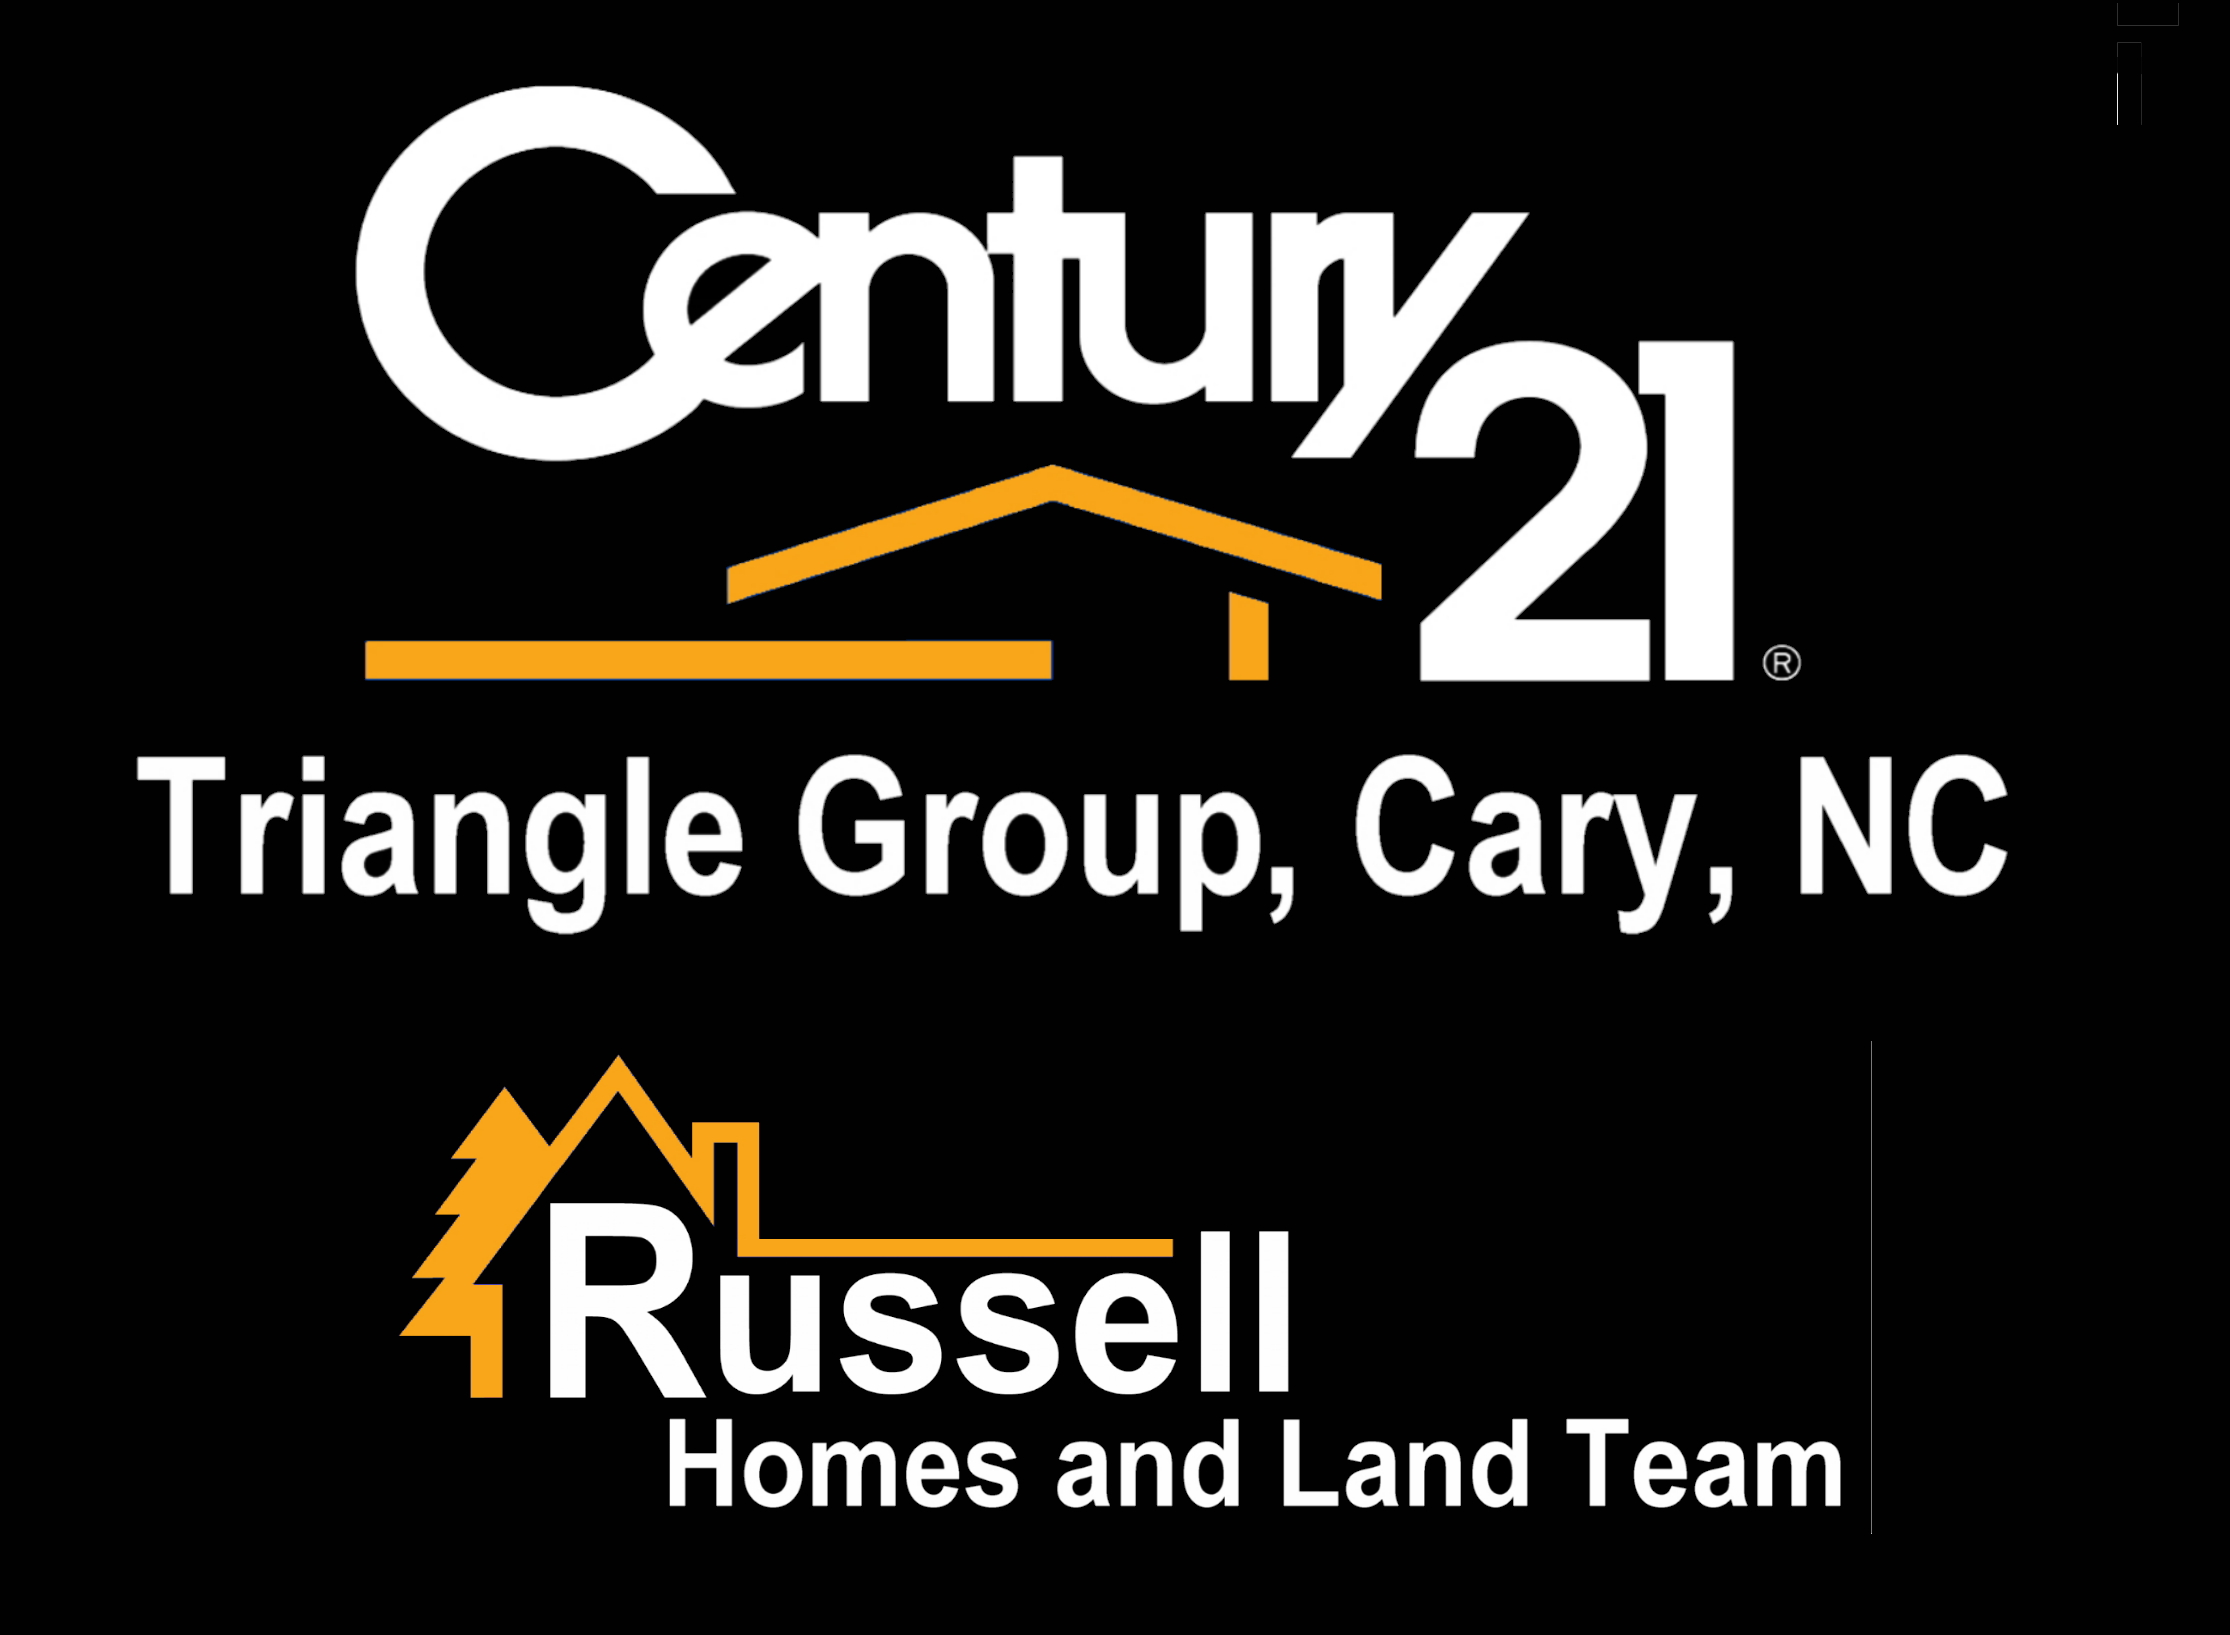 1 and 21 Russell Logo w Century 21 V.jpg